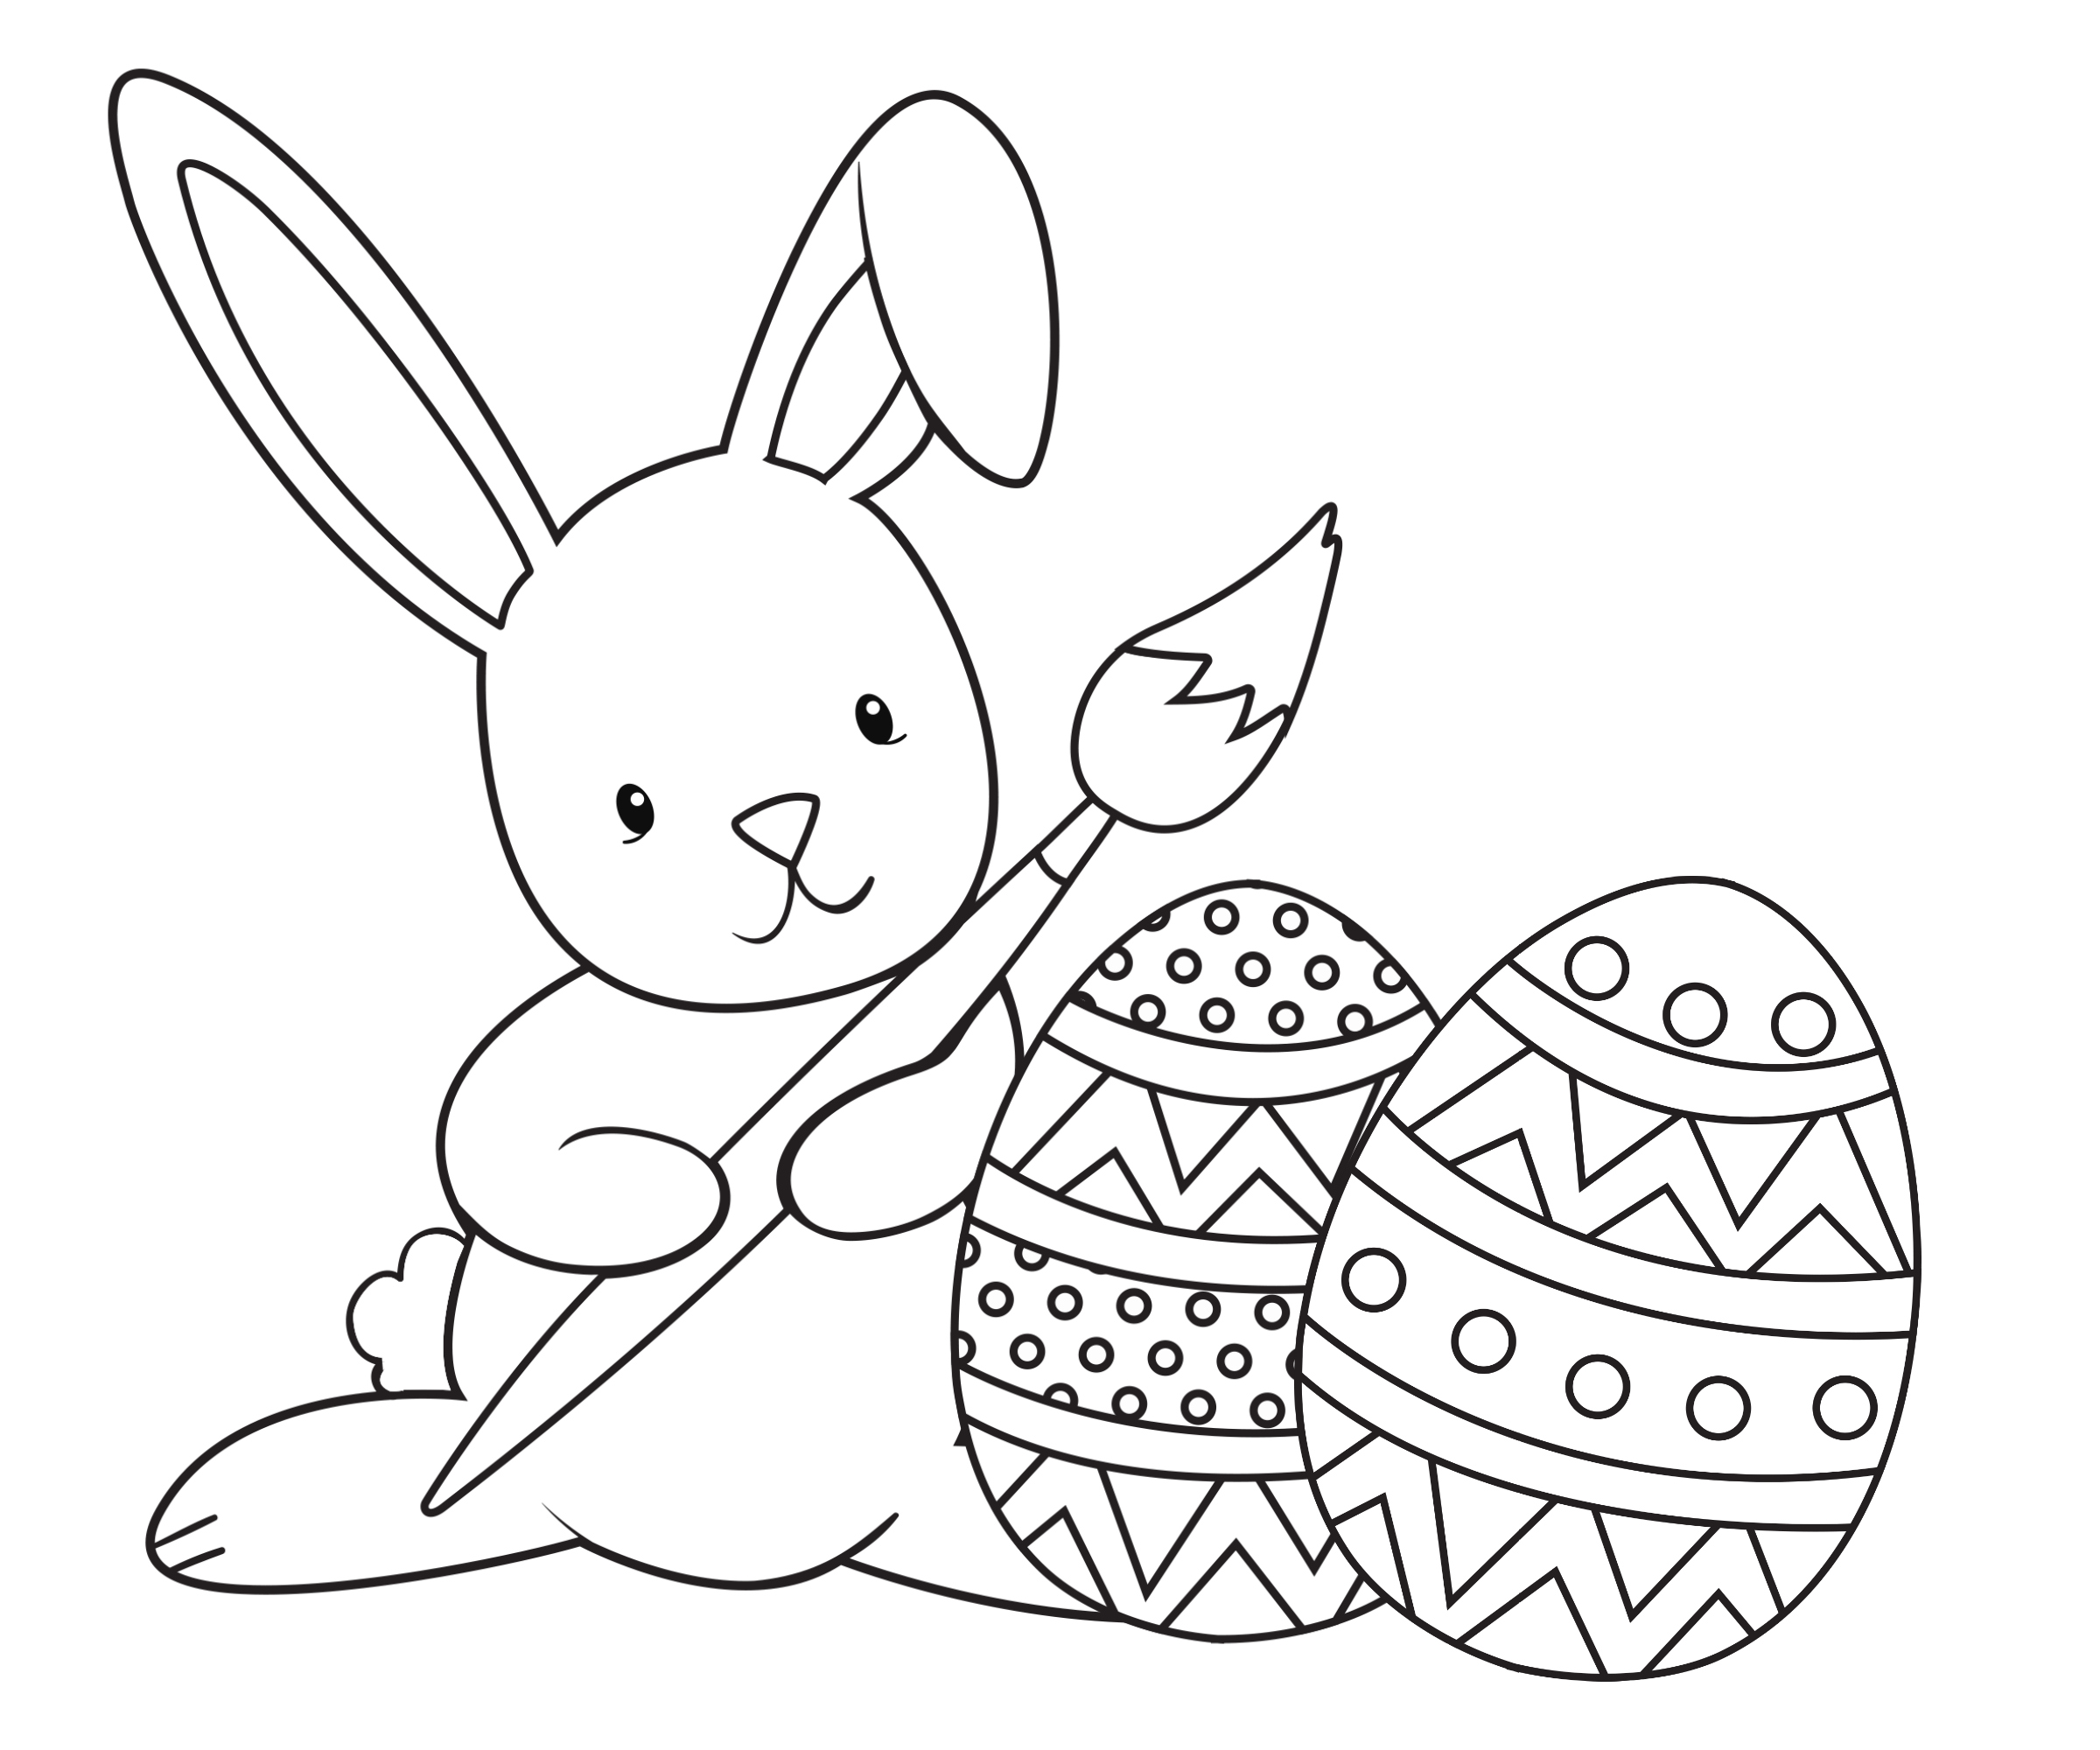 Coloring Pages For Easter Bunny : Easter coloring pages for kids crazy little projects